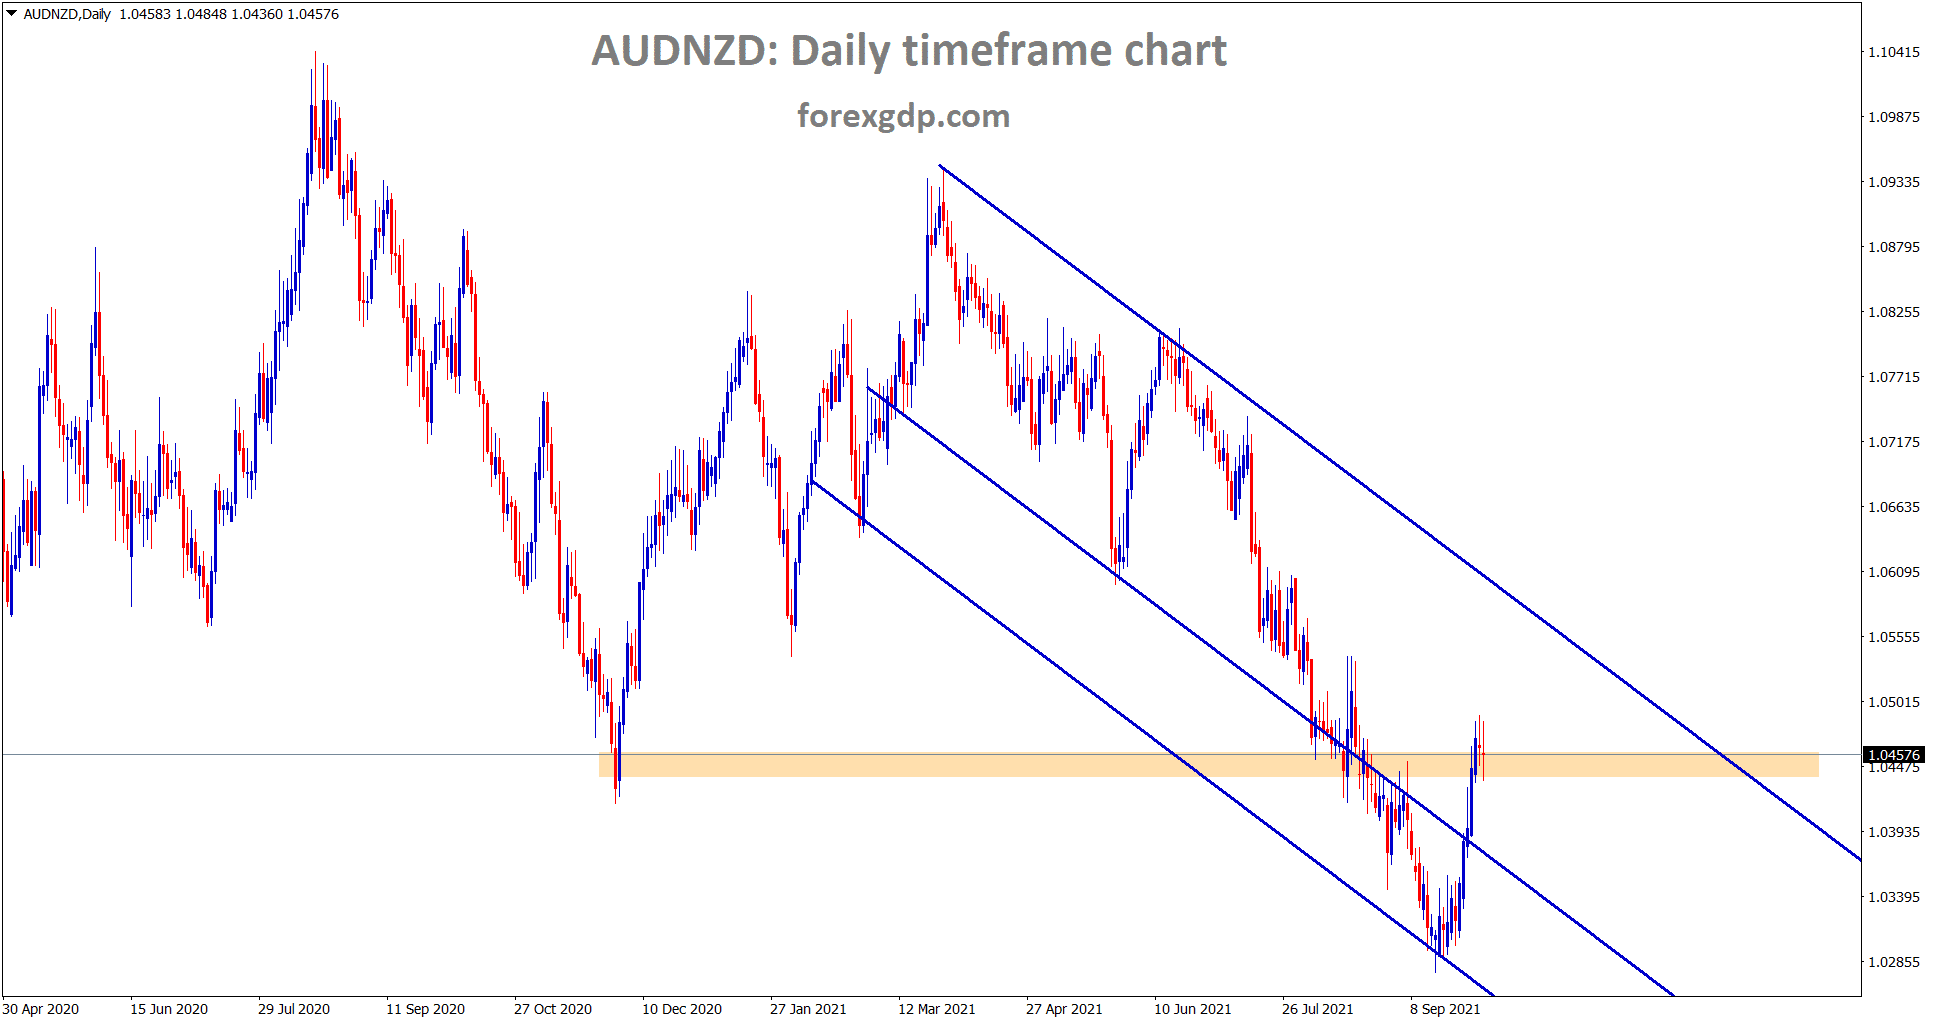 AUDNZD is moving up continuously now standing at the previous support level however market has rebounded hardly from the major support level 1.02